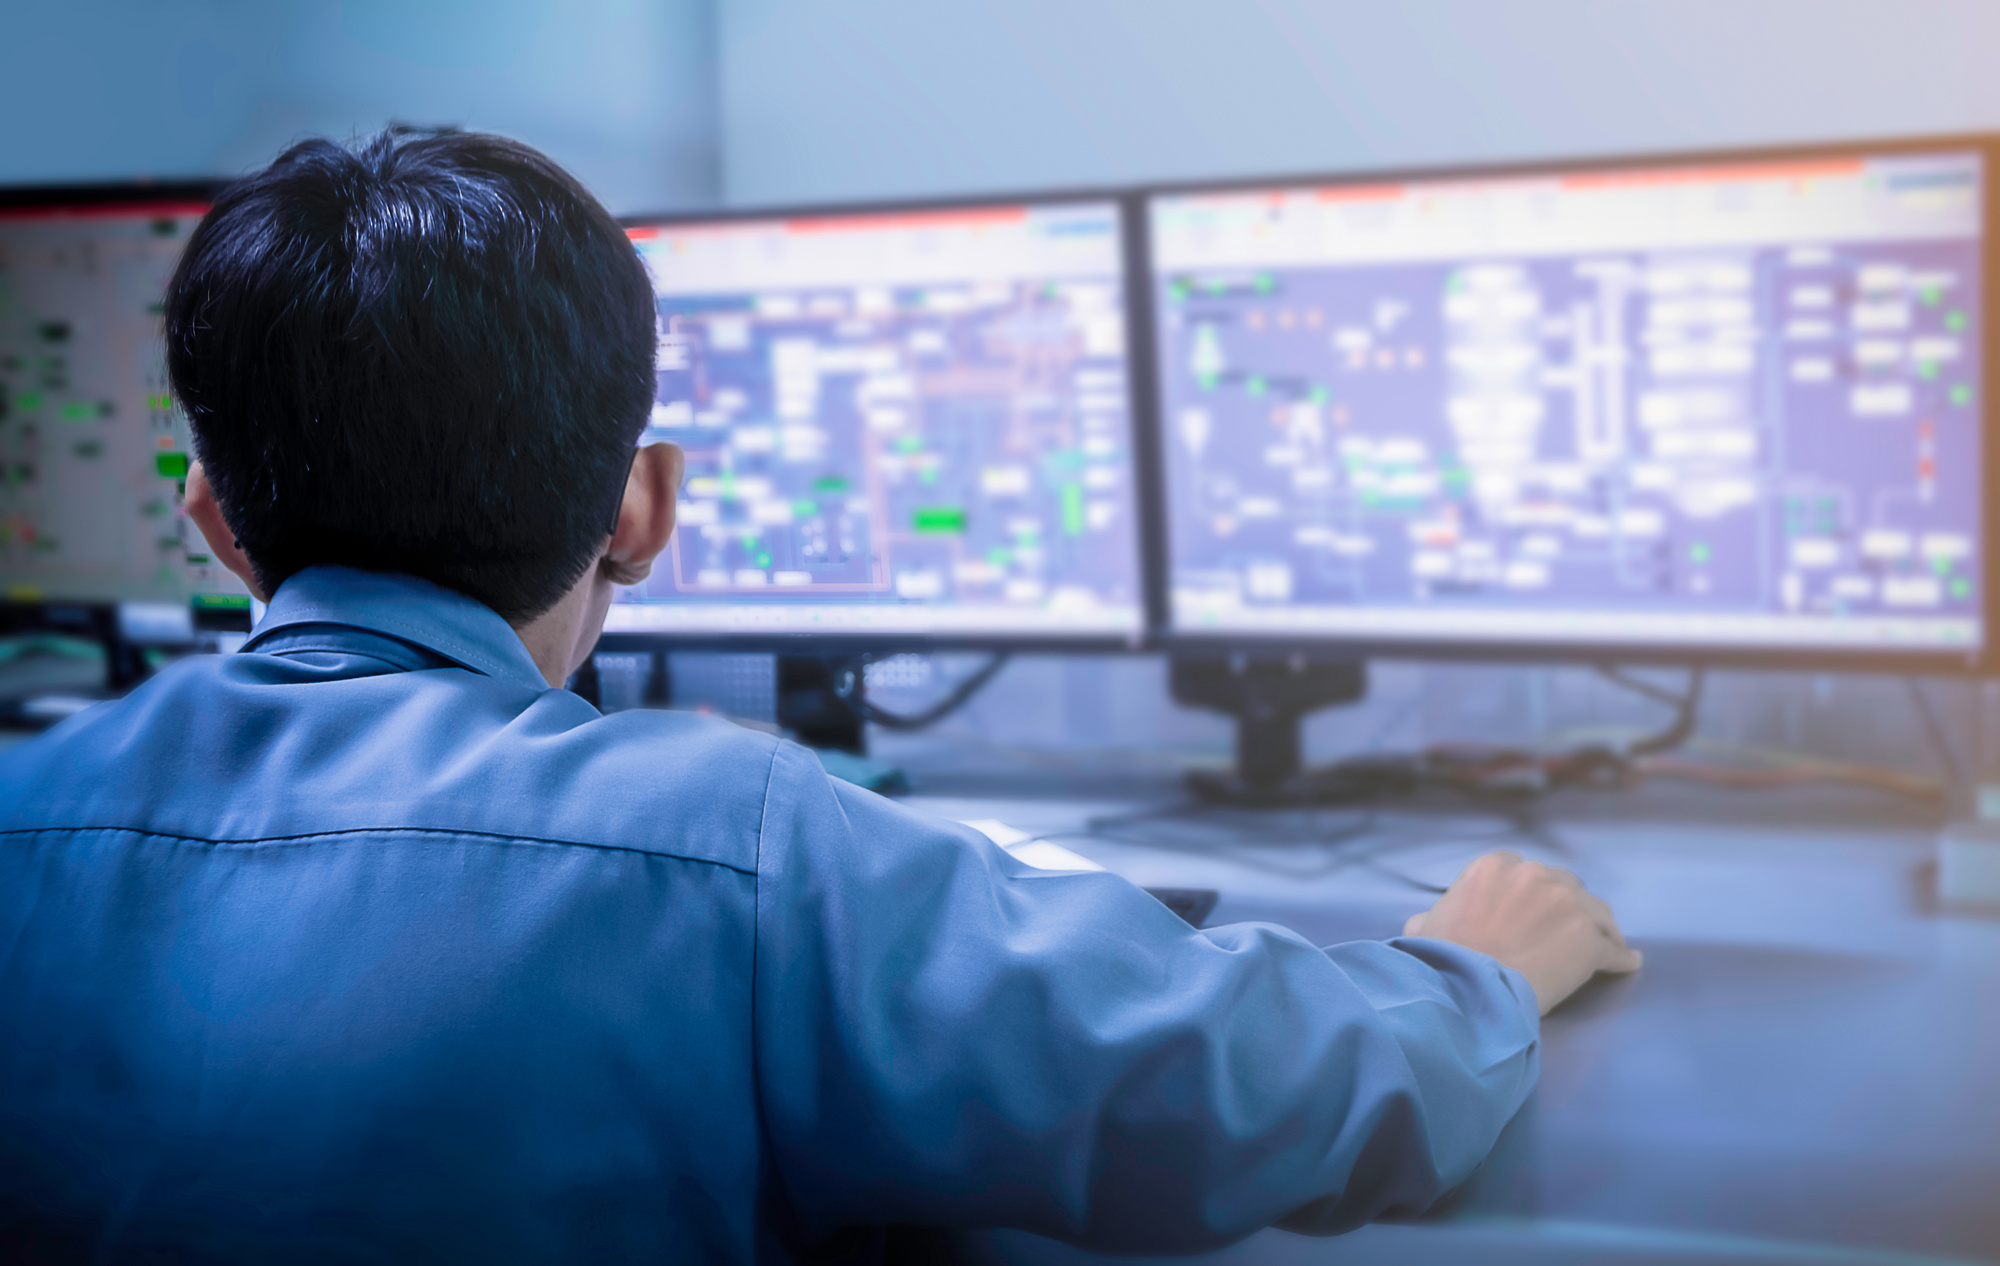 5 Impressive Ways a Remote System Monitor Keeps Your Business Safe